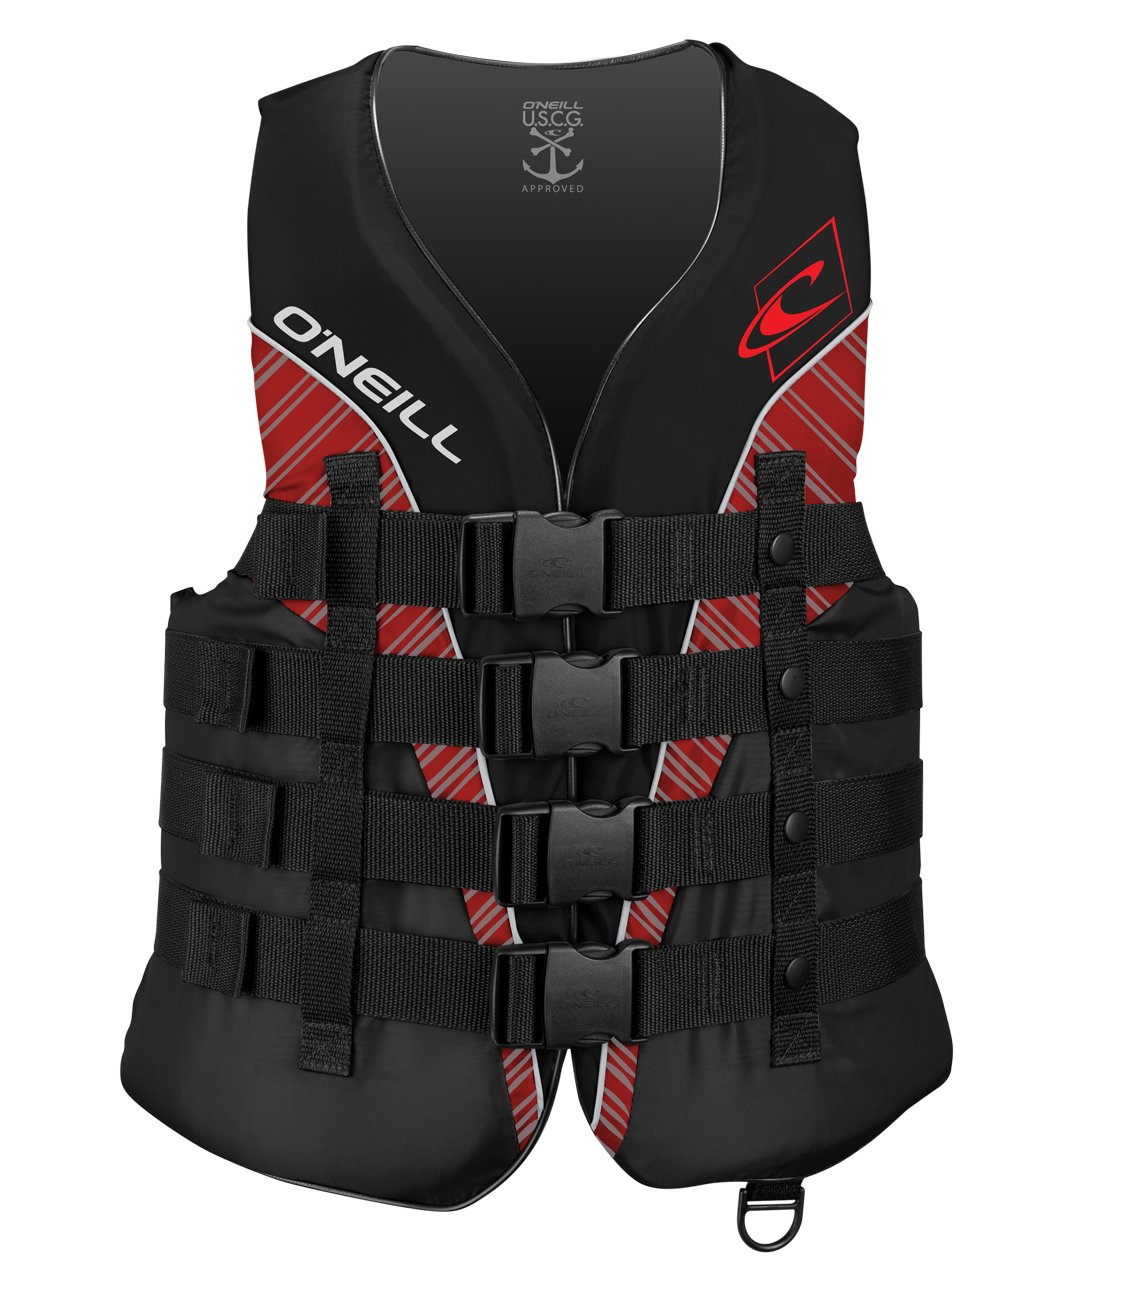 O'Neill   Men's Superlite USCG Life Vest,Black/Graphite/Red/White,Small by O'Neill Wetsuits (Image #1)